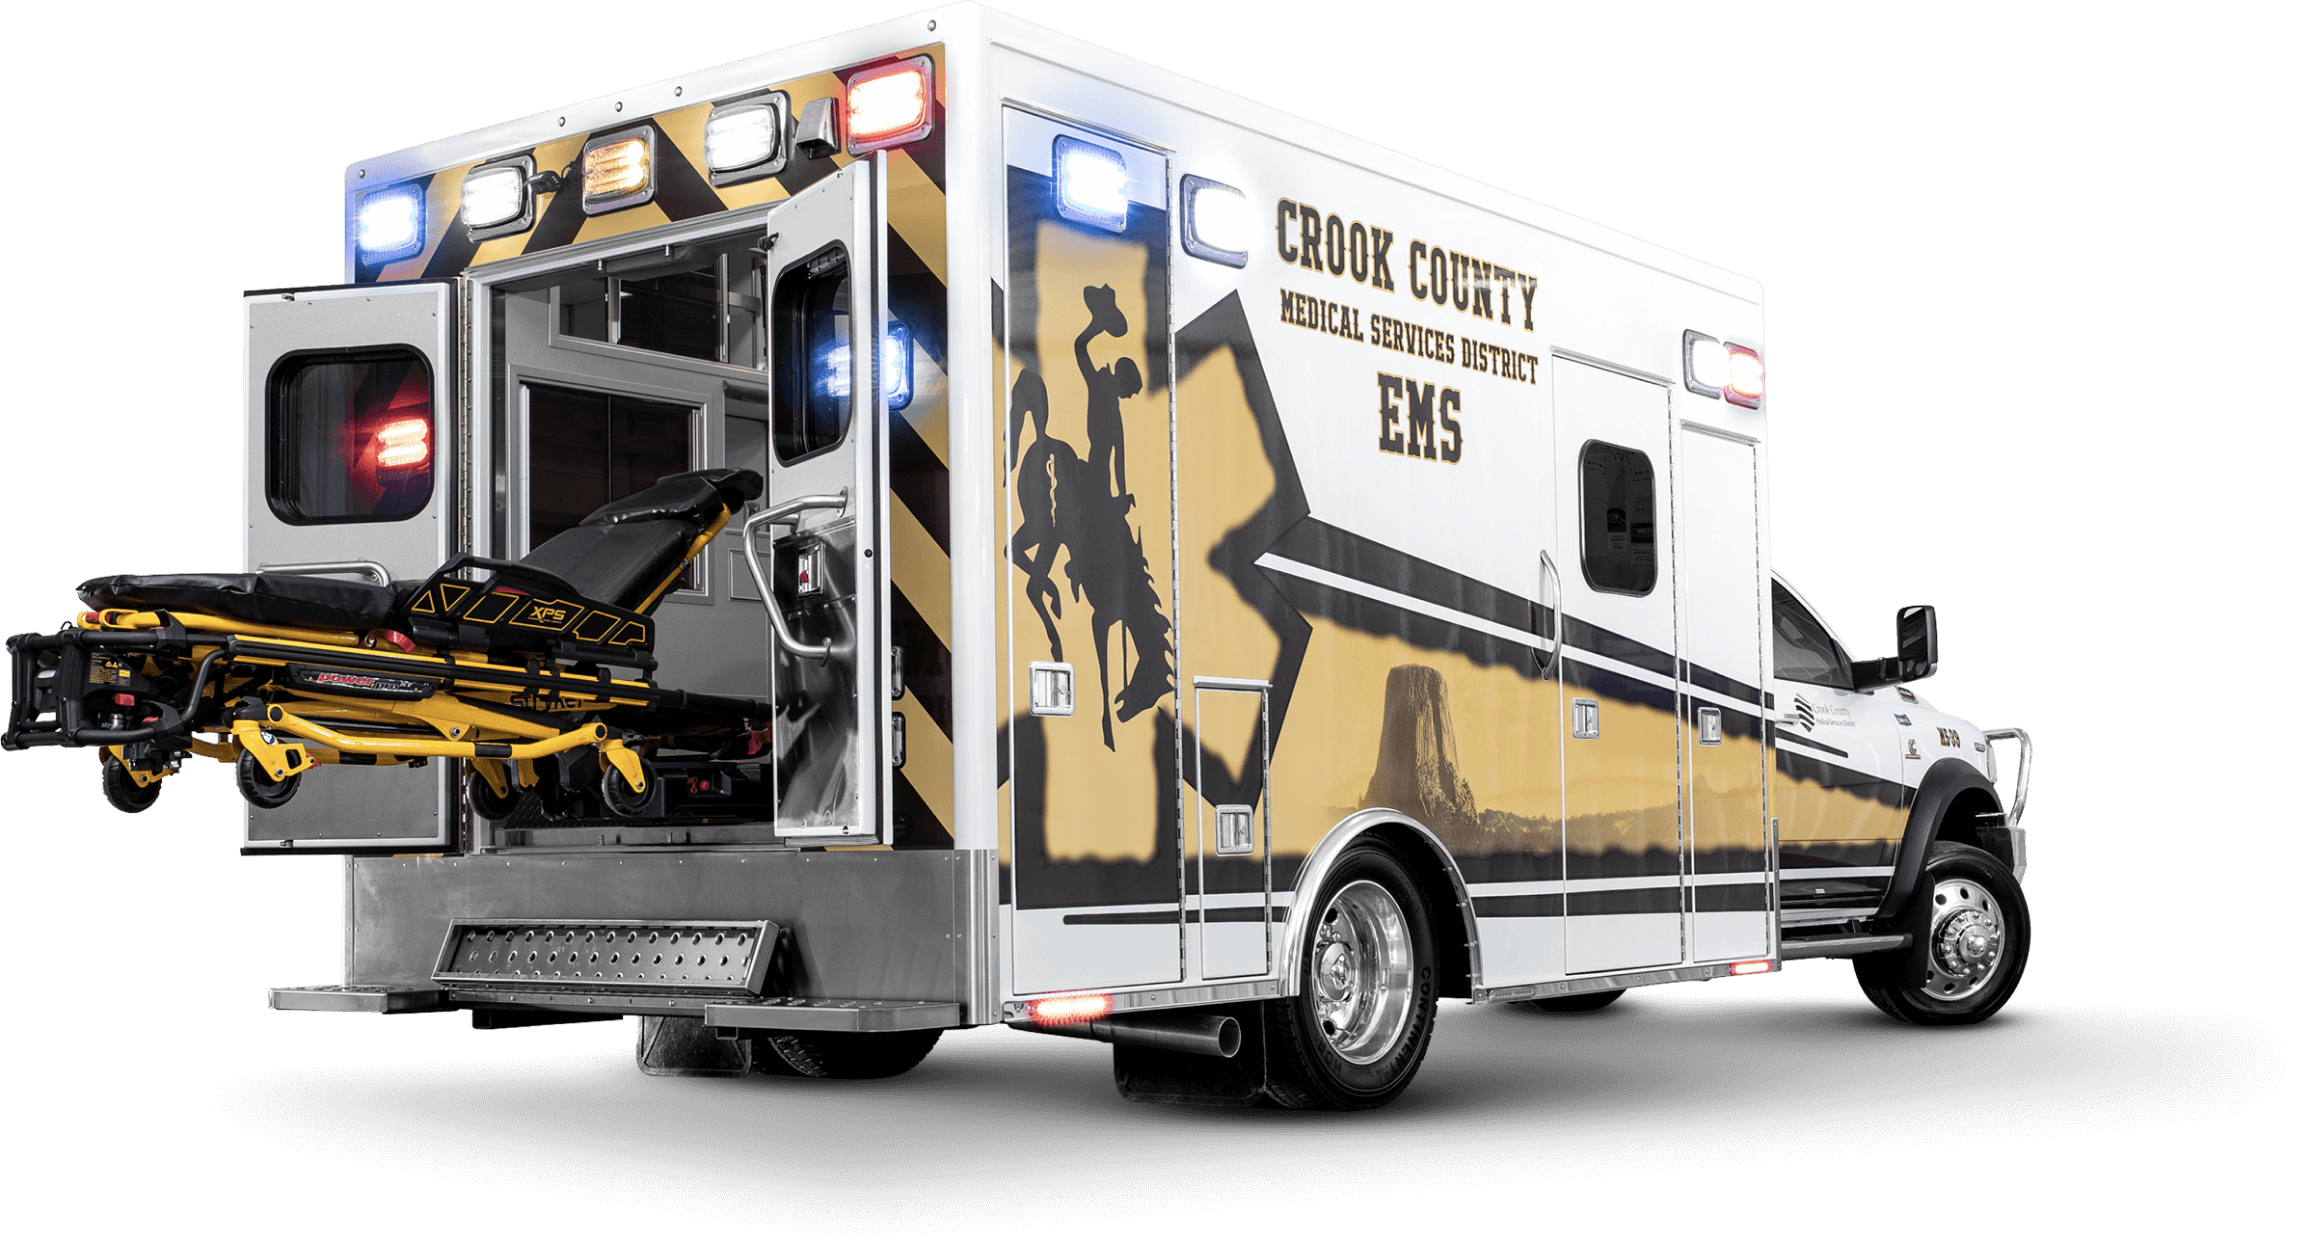 Rear View of Crook County Ambulance